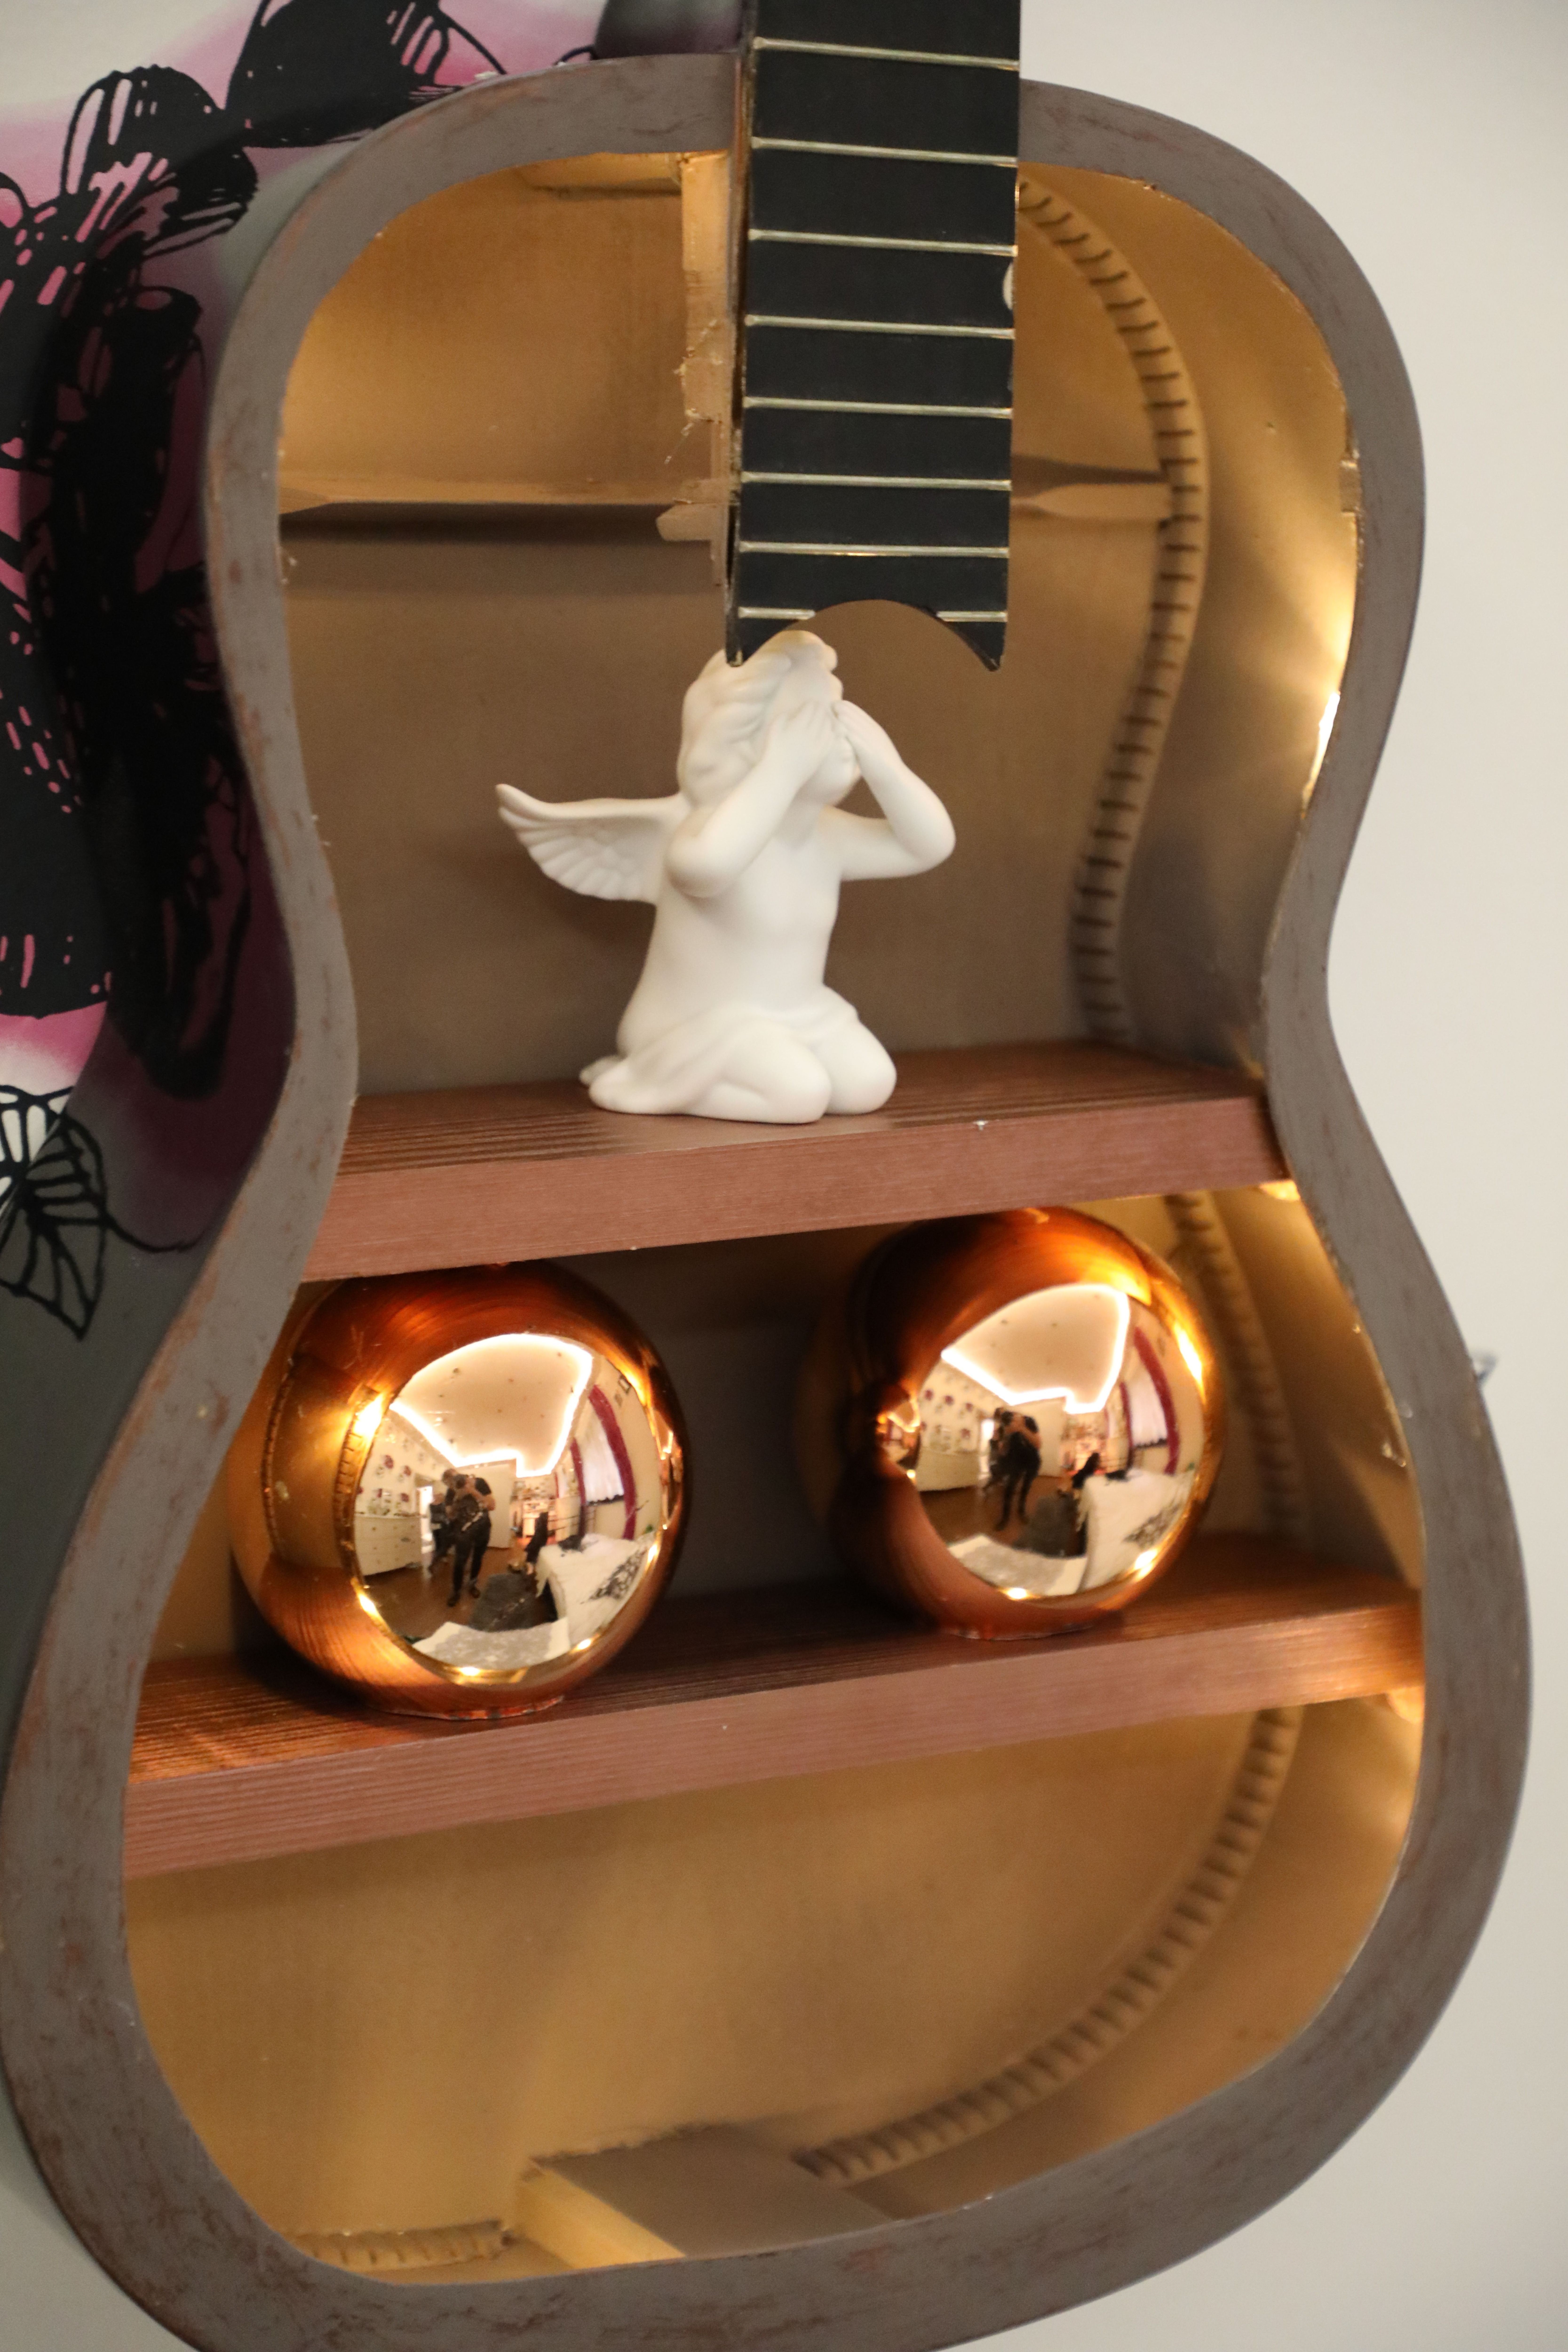 Pin by Sheveley on Guitar DIY changed into shelf with led